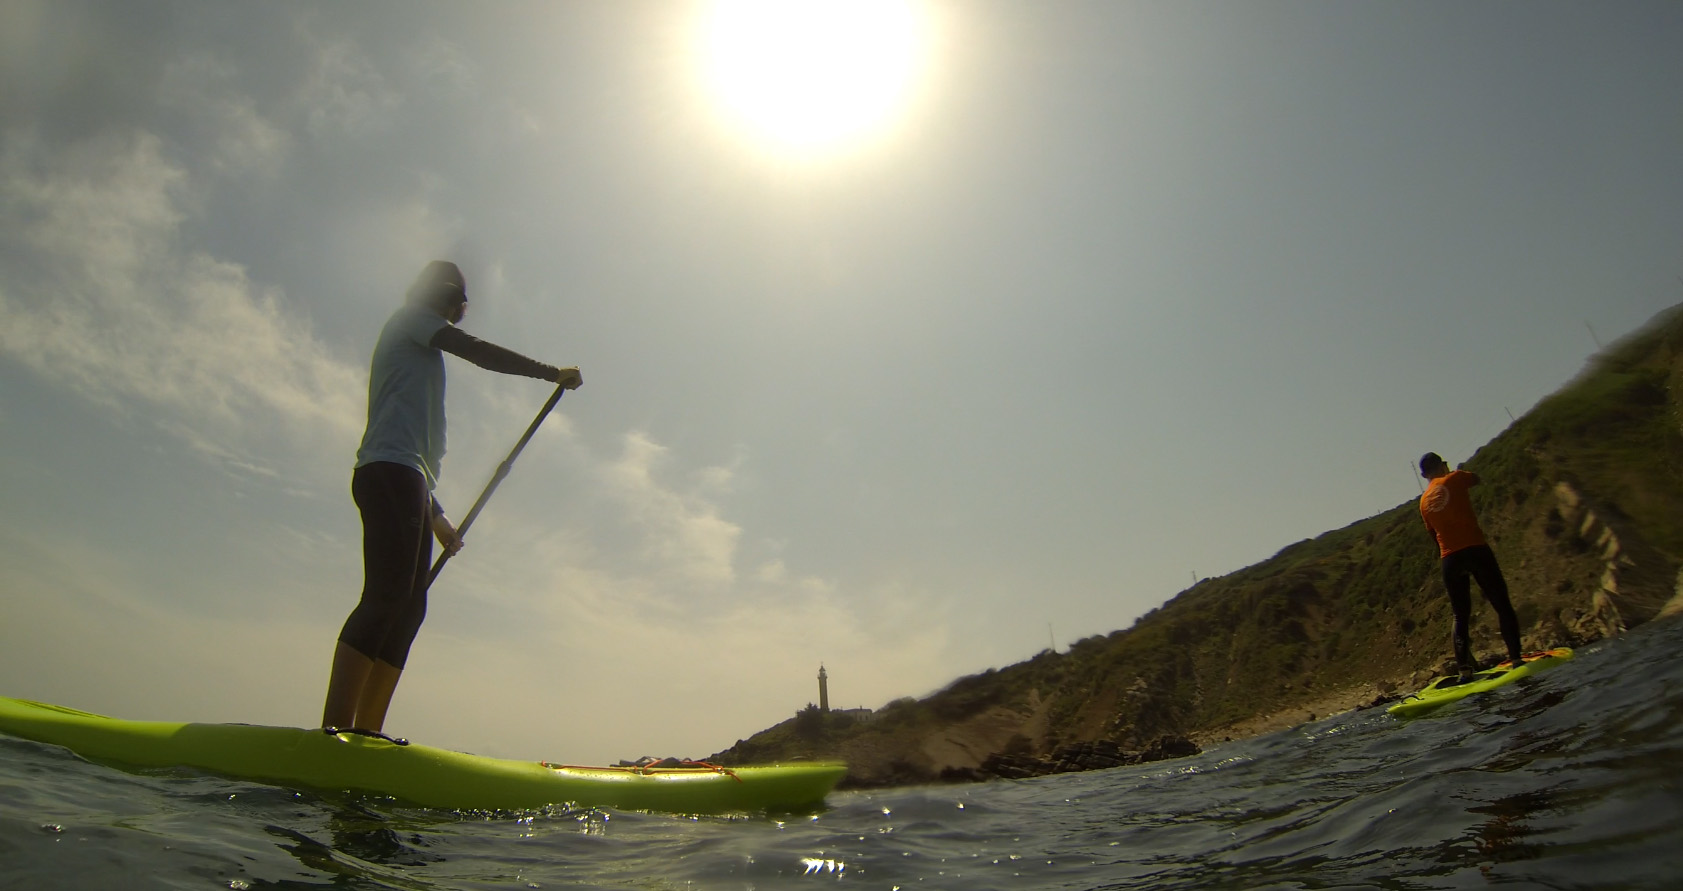 SUP tour in the straight of Gibraltar natural park